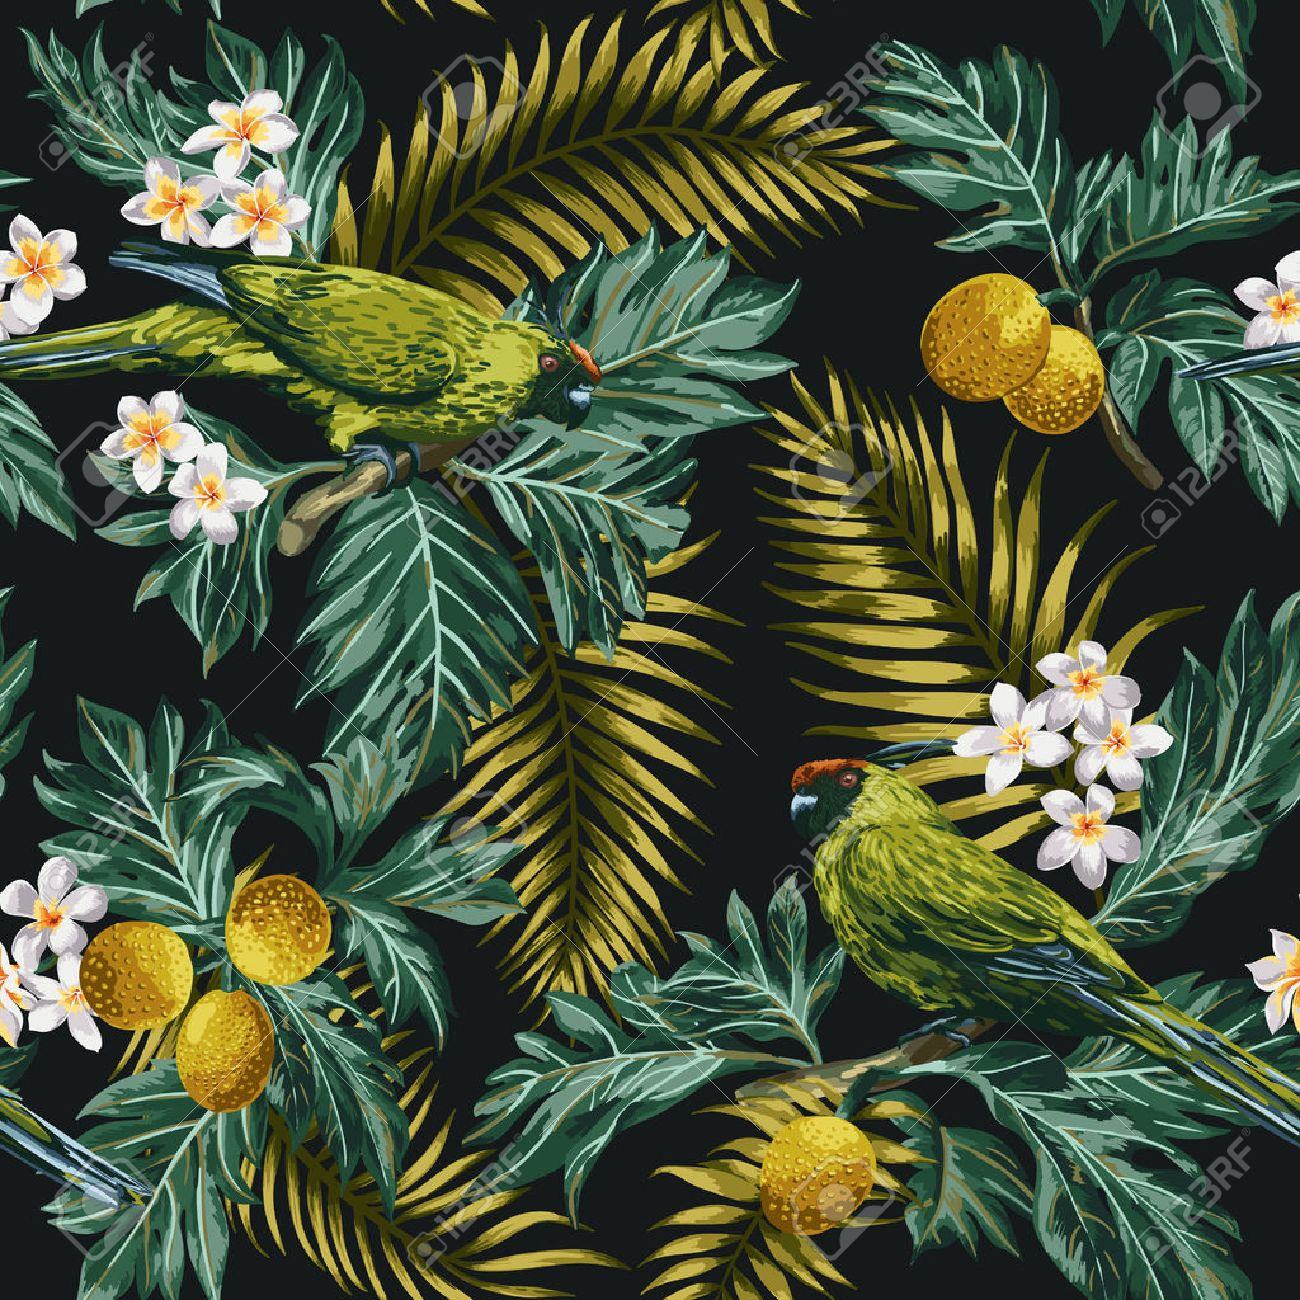 Seamless exotic tropical pattern with leaves, fruits, flowers and birds. Breadfruit, palm, plumeria, parrots. Vector illustration. - 56799897